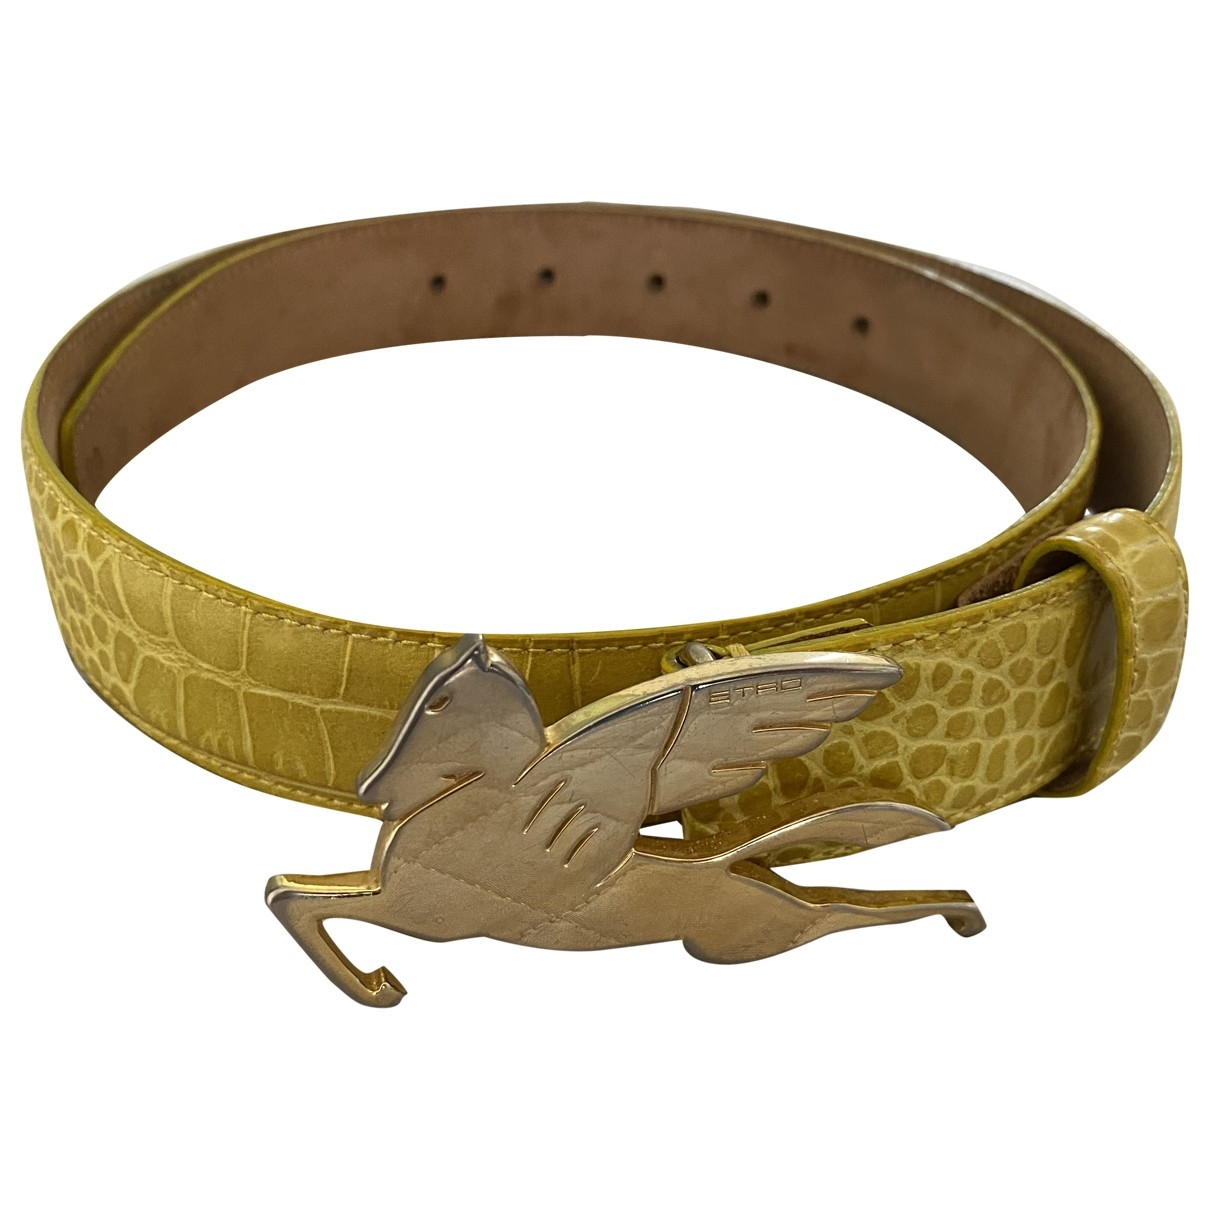 Etro \N Yellow Leather belt for Women 80 cm